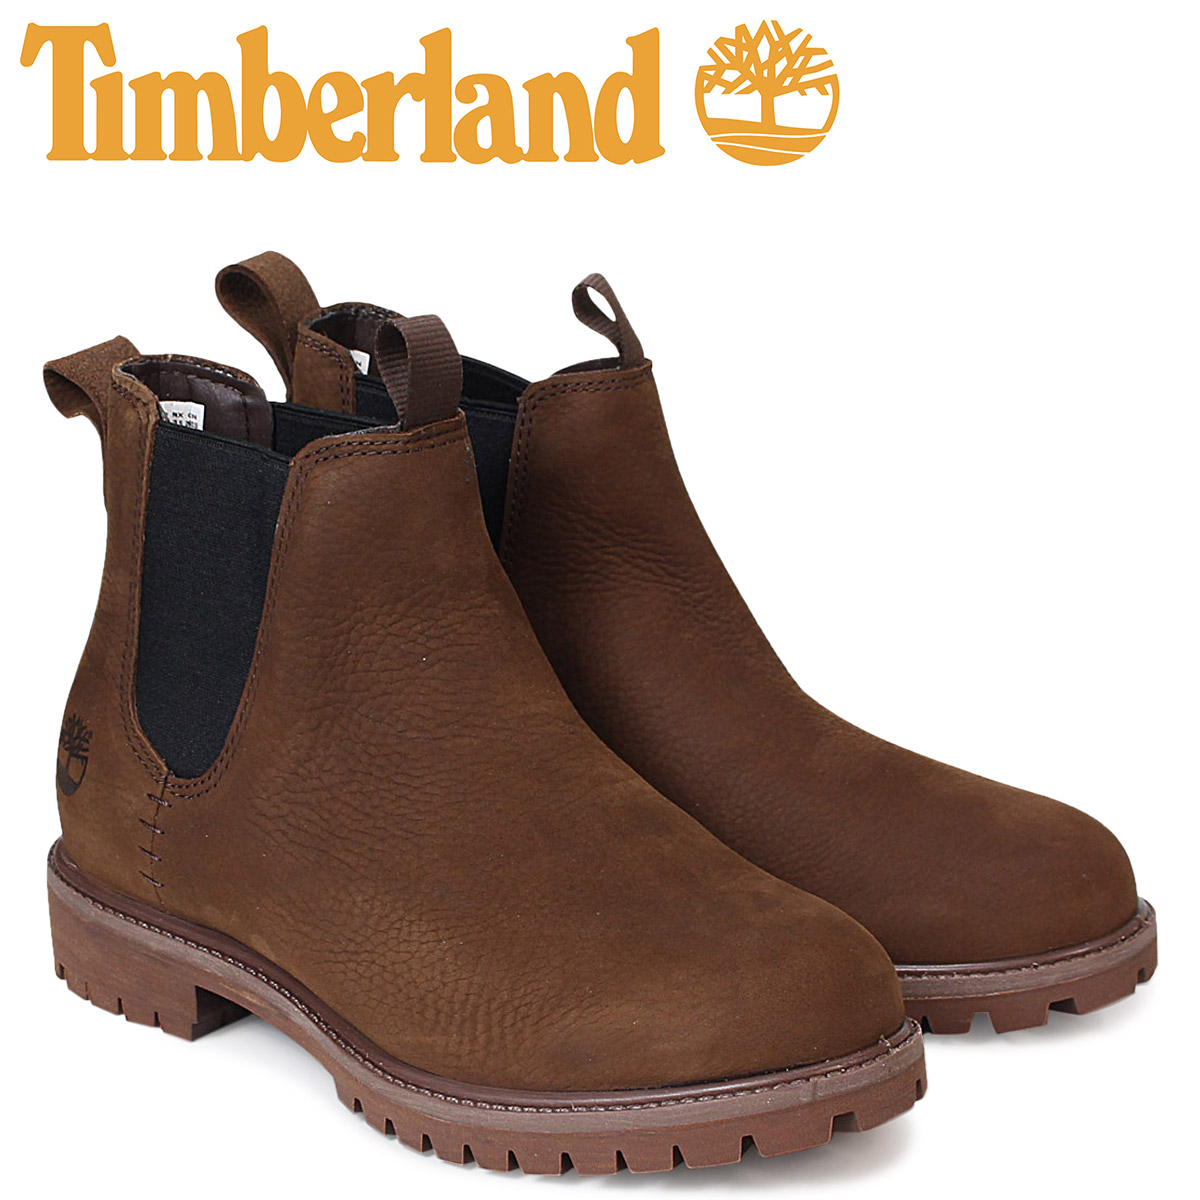 Timberland 6 inches men's Timberland boots premium 6INCHI PREMIUM CHELSEA BOOTS A1M5G W Wise waterproofing brown